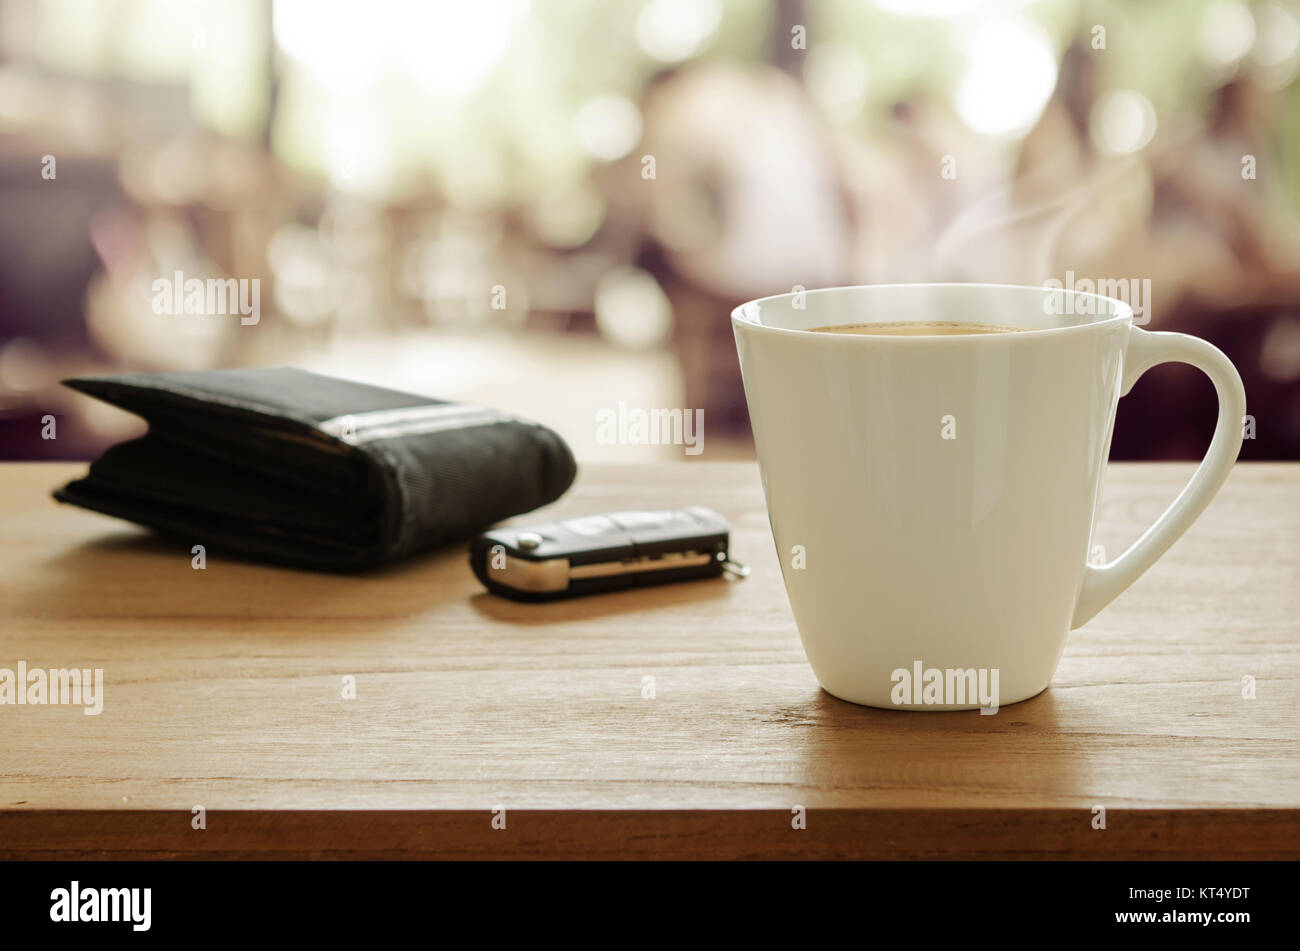 Cup of coffee, wallet and car remote key on wooden table in